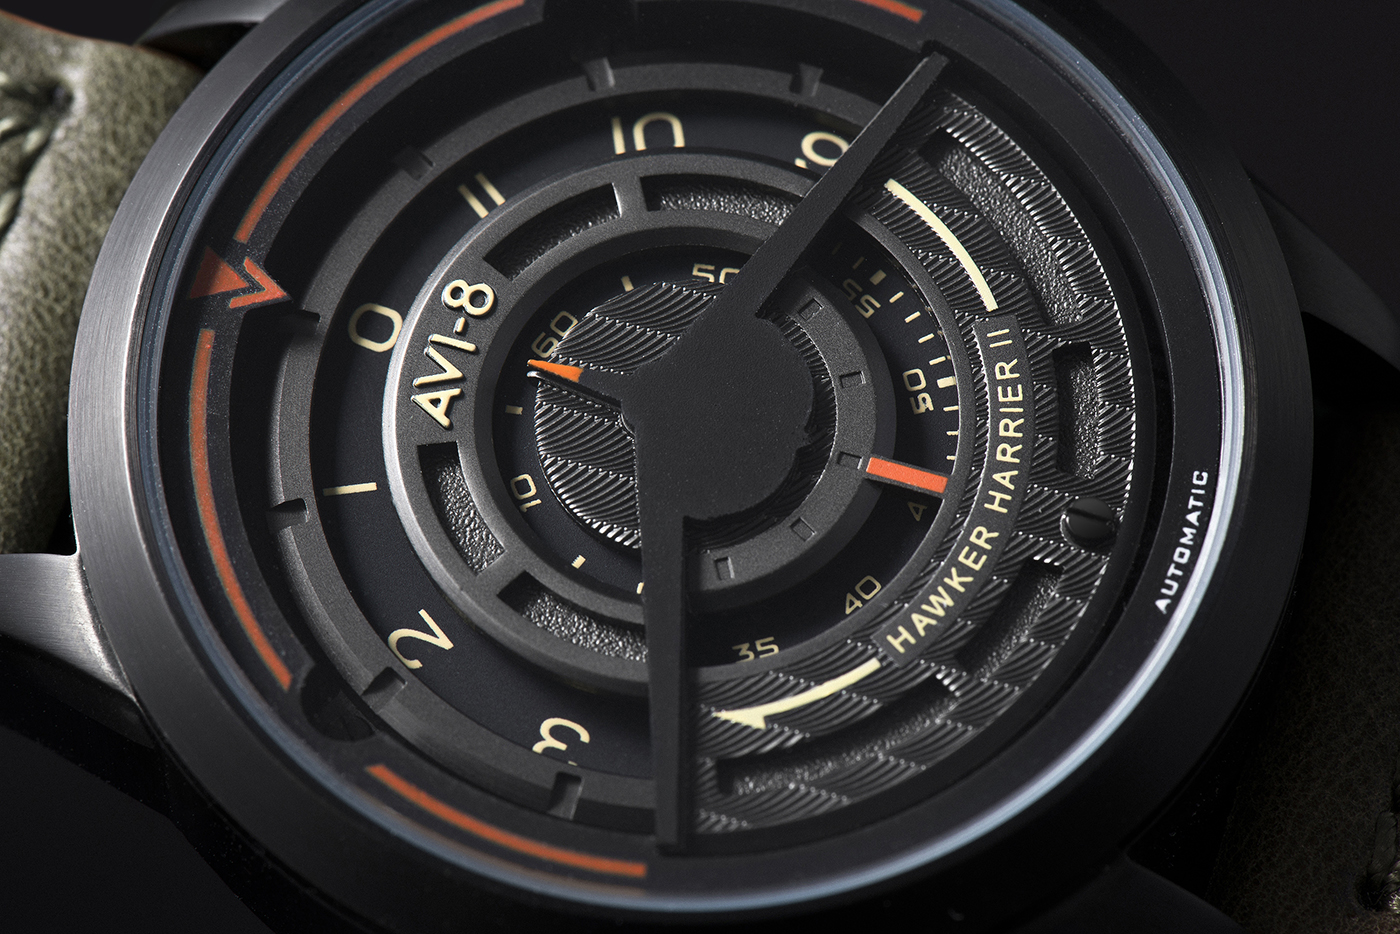 A close-up of the Titanium Carbide coated version of the AV 4047 Harrier II timepiece.